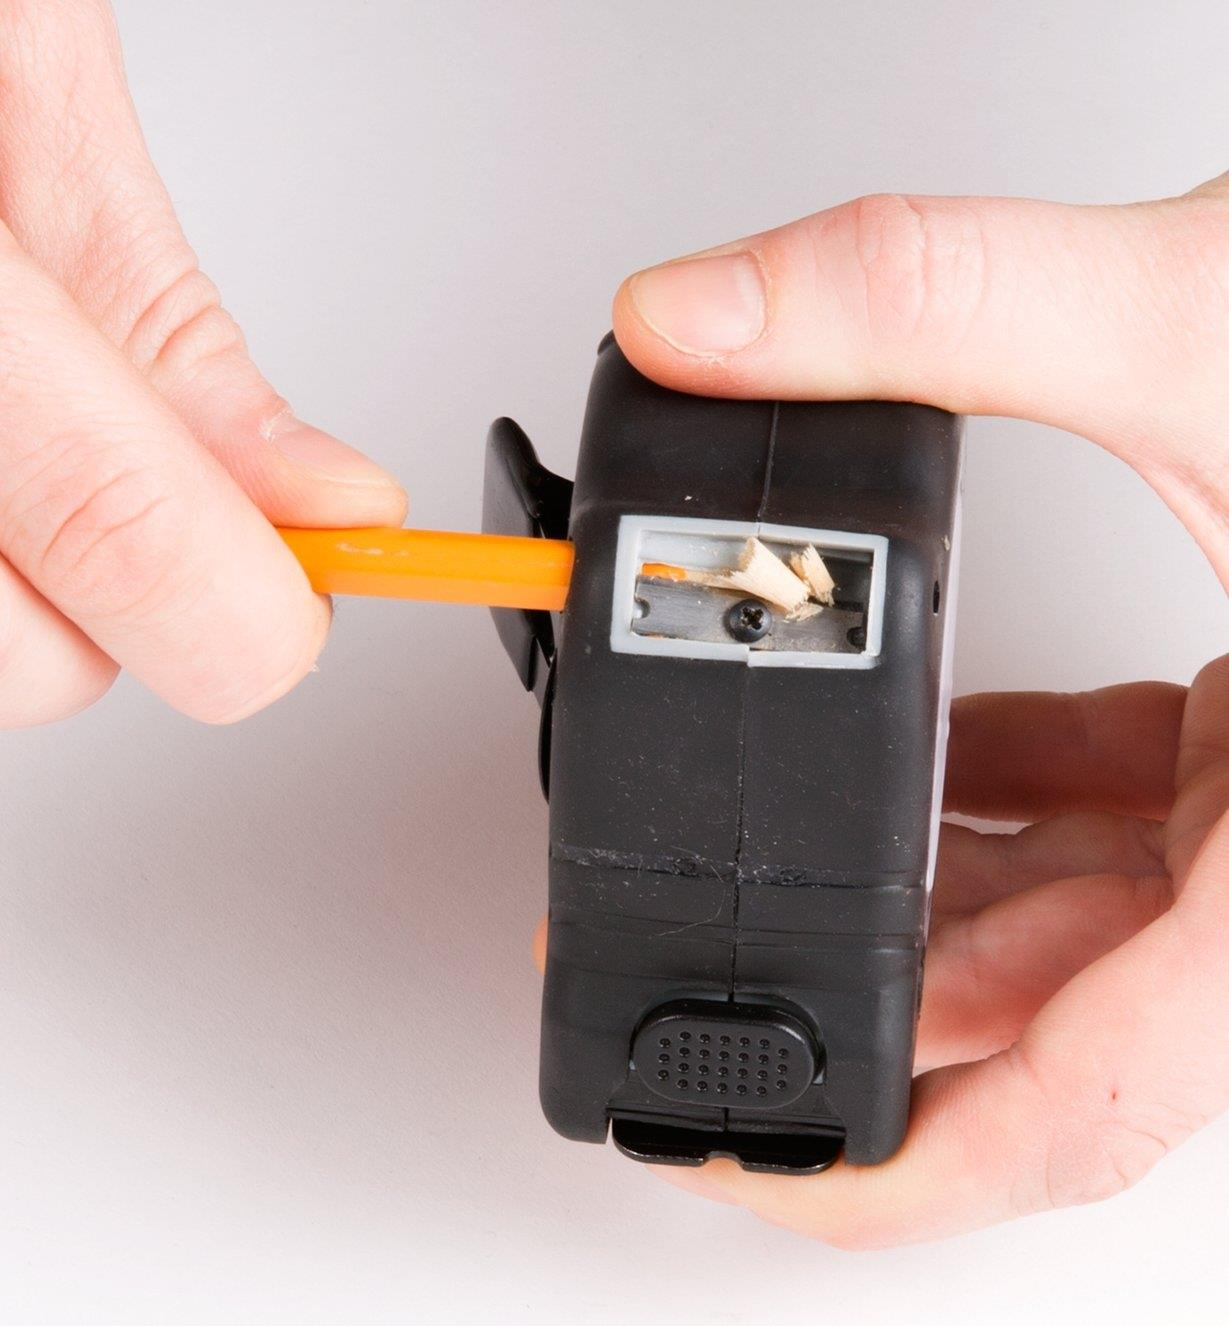 Sharpening a pencil in the built-in pencil sharpener